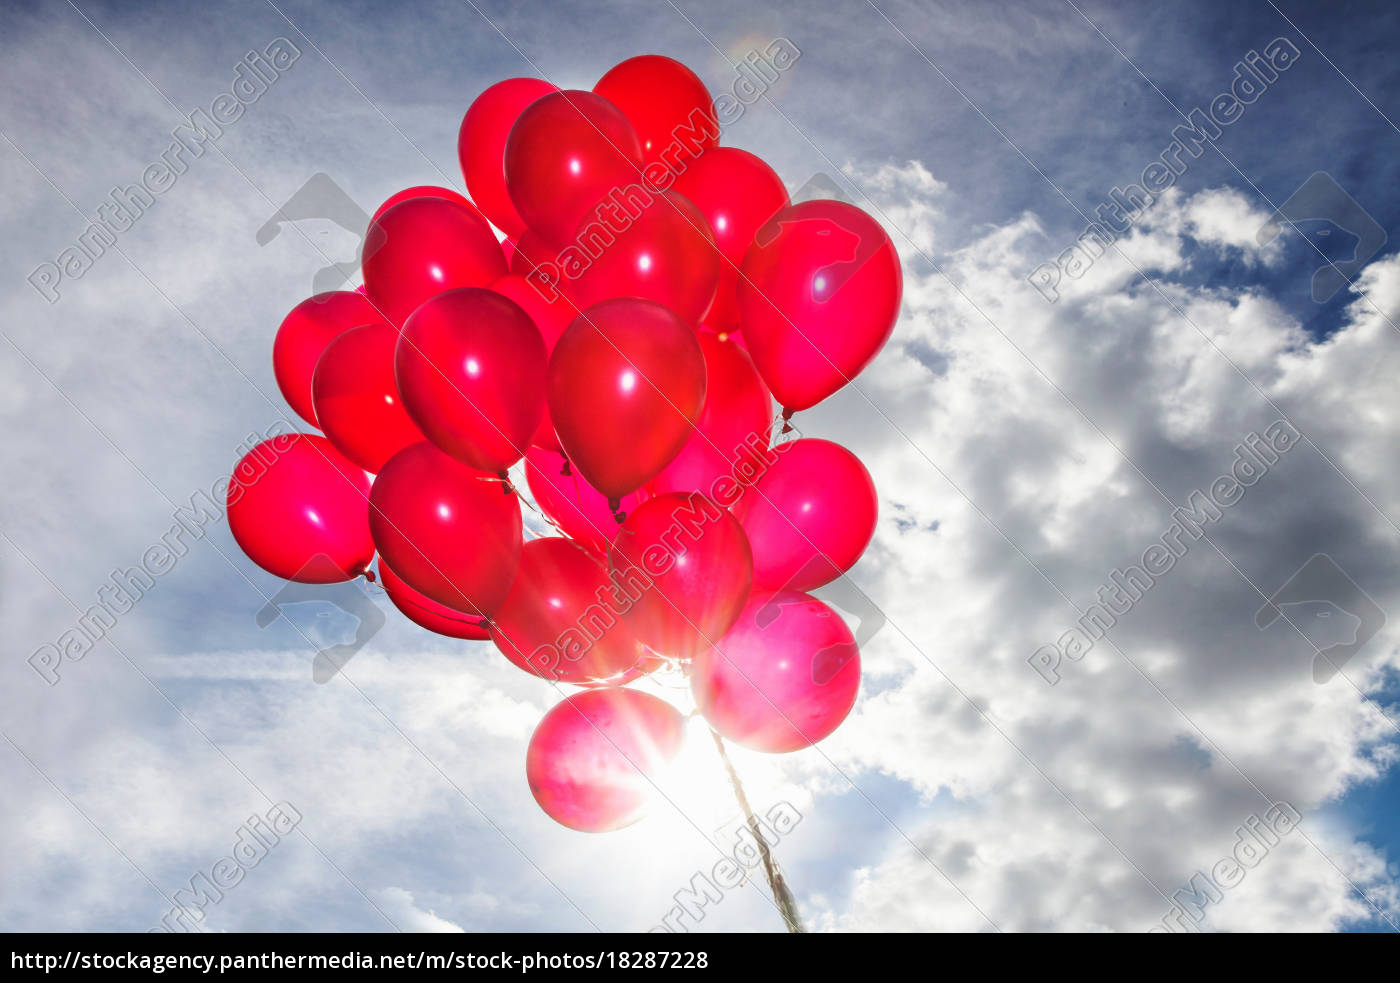 bunch, of, red, balloons, in, blue - 18287228